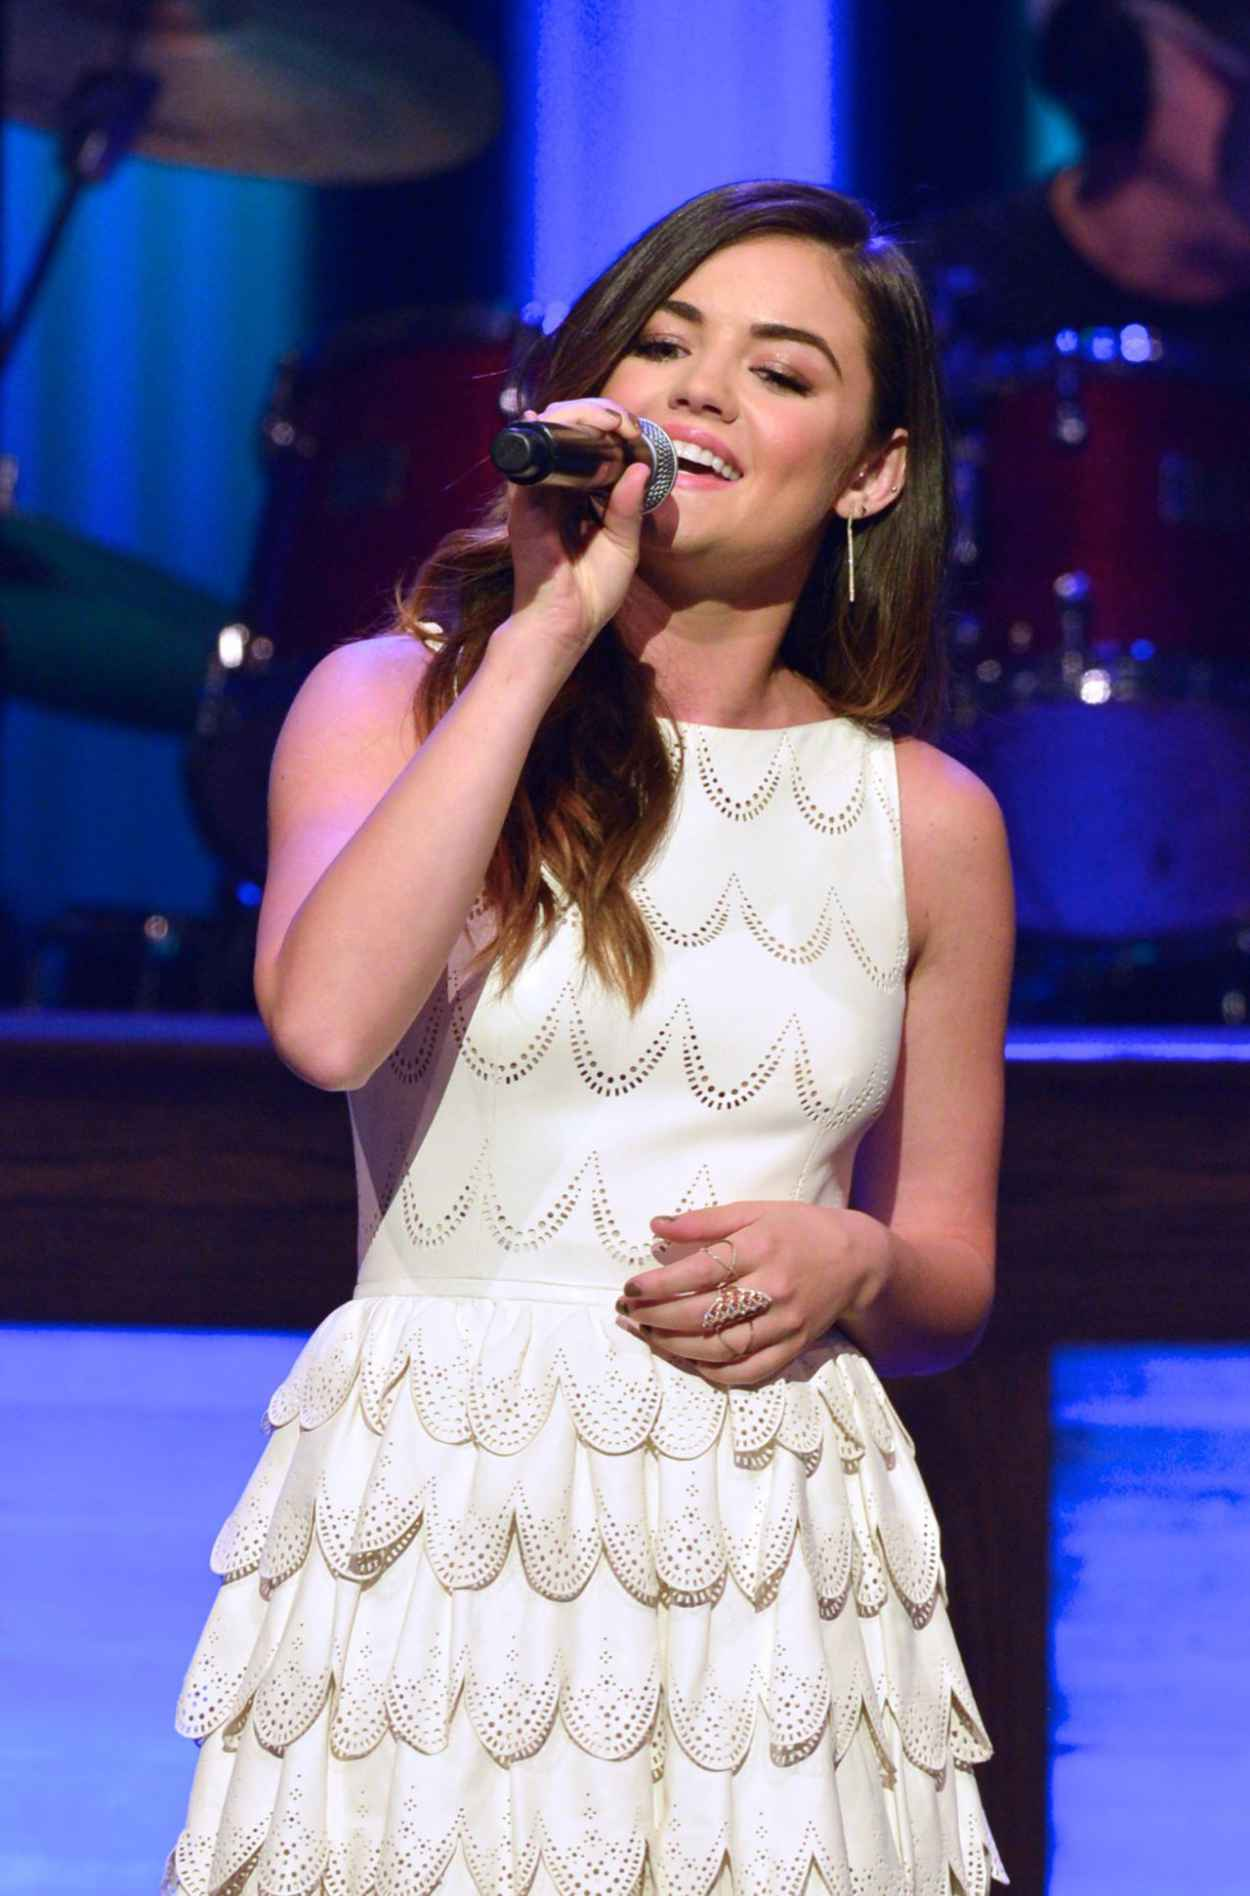 Lucy Hale Performs at The Grand Ole Opry in Nashville - June 2015-1